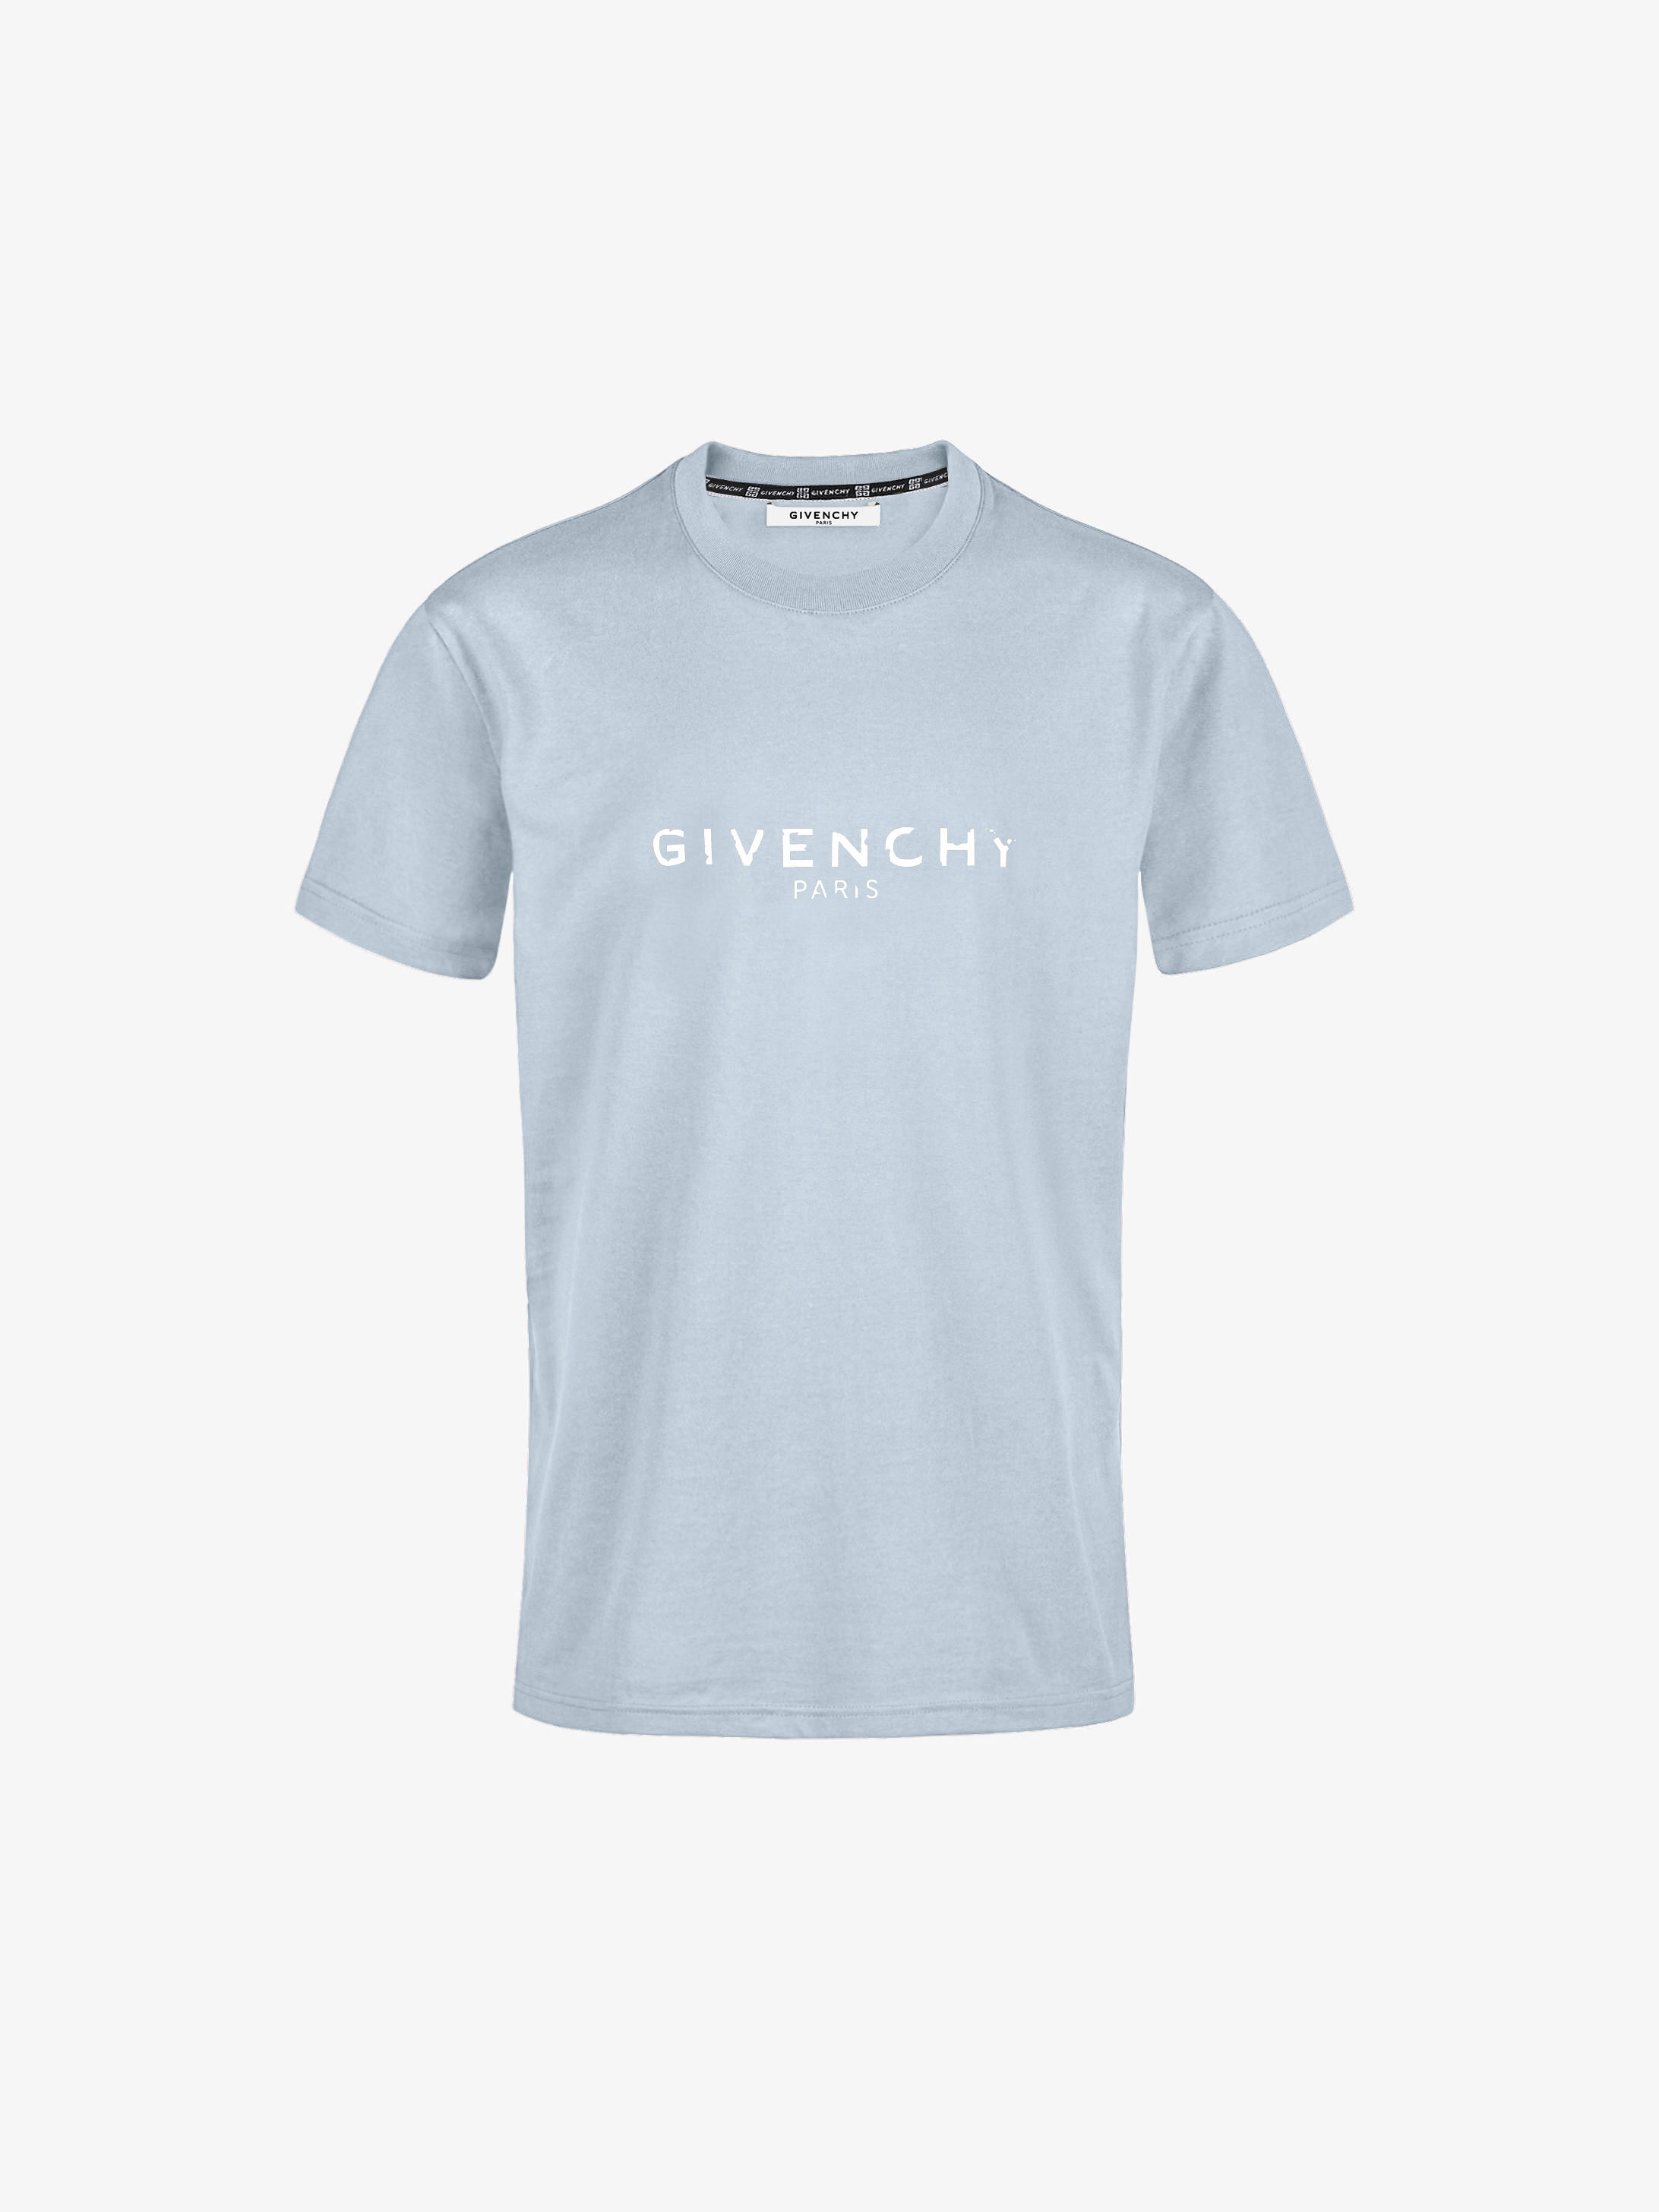 18ba968f Men's T-Shirts collection by Givenchy. | GIVENCHY Paris